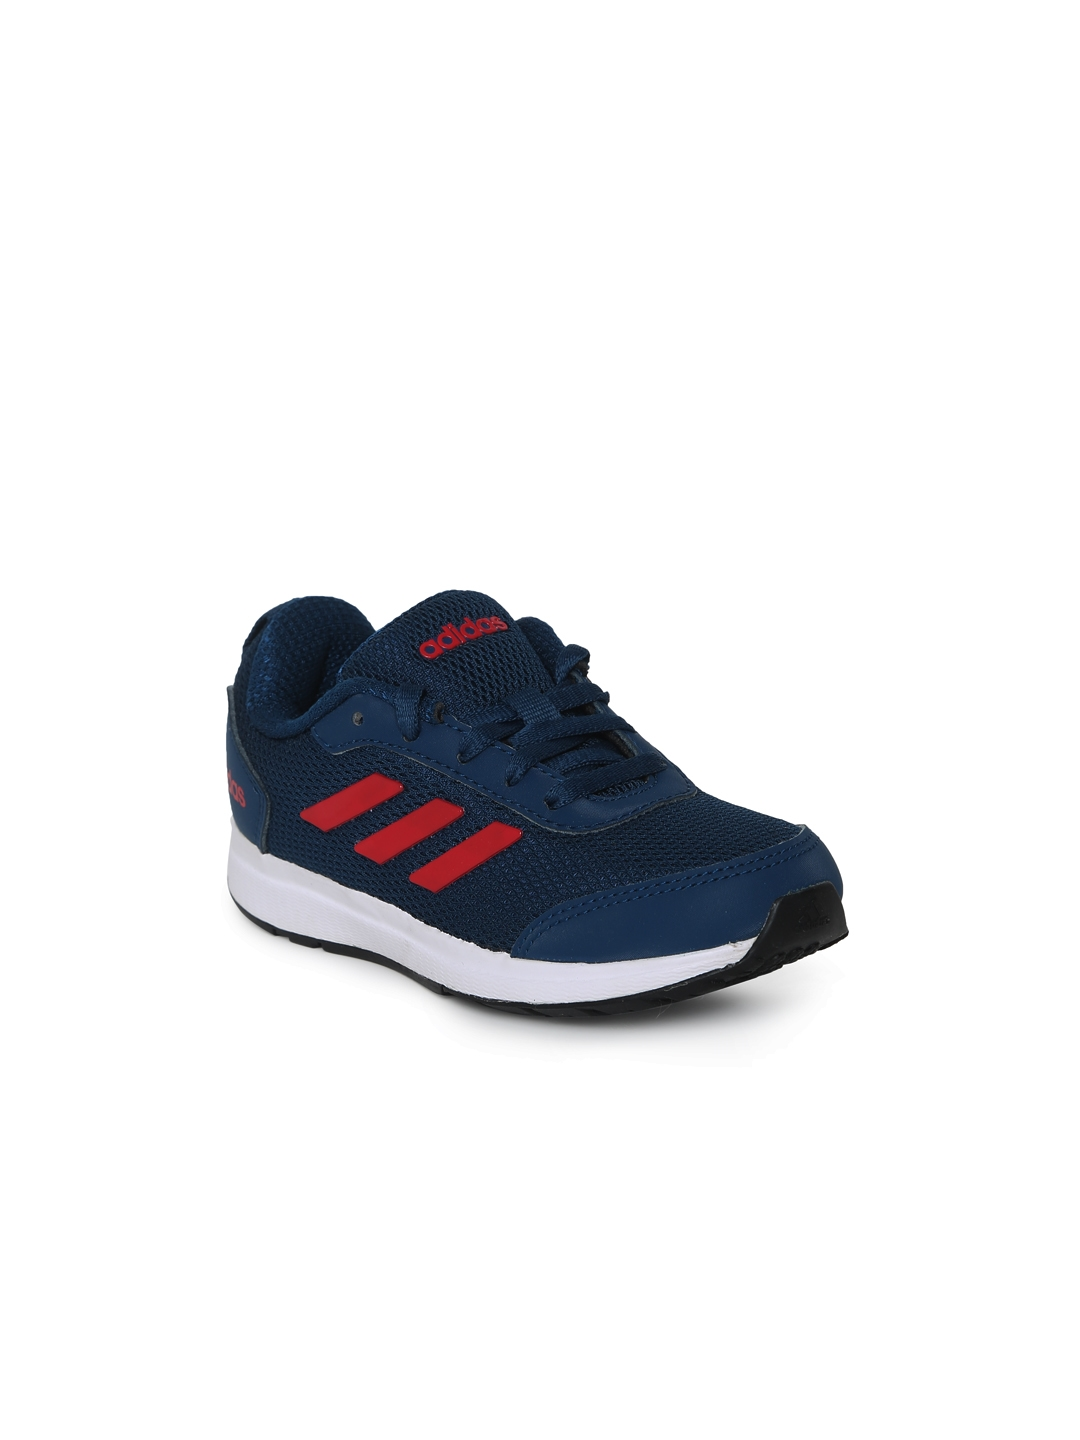 4a569e894977 Buy ADIDAS Boys Blue ELEMENT V 3 K Running Shoes - Sports Shoes for ...